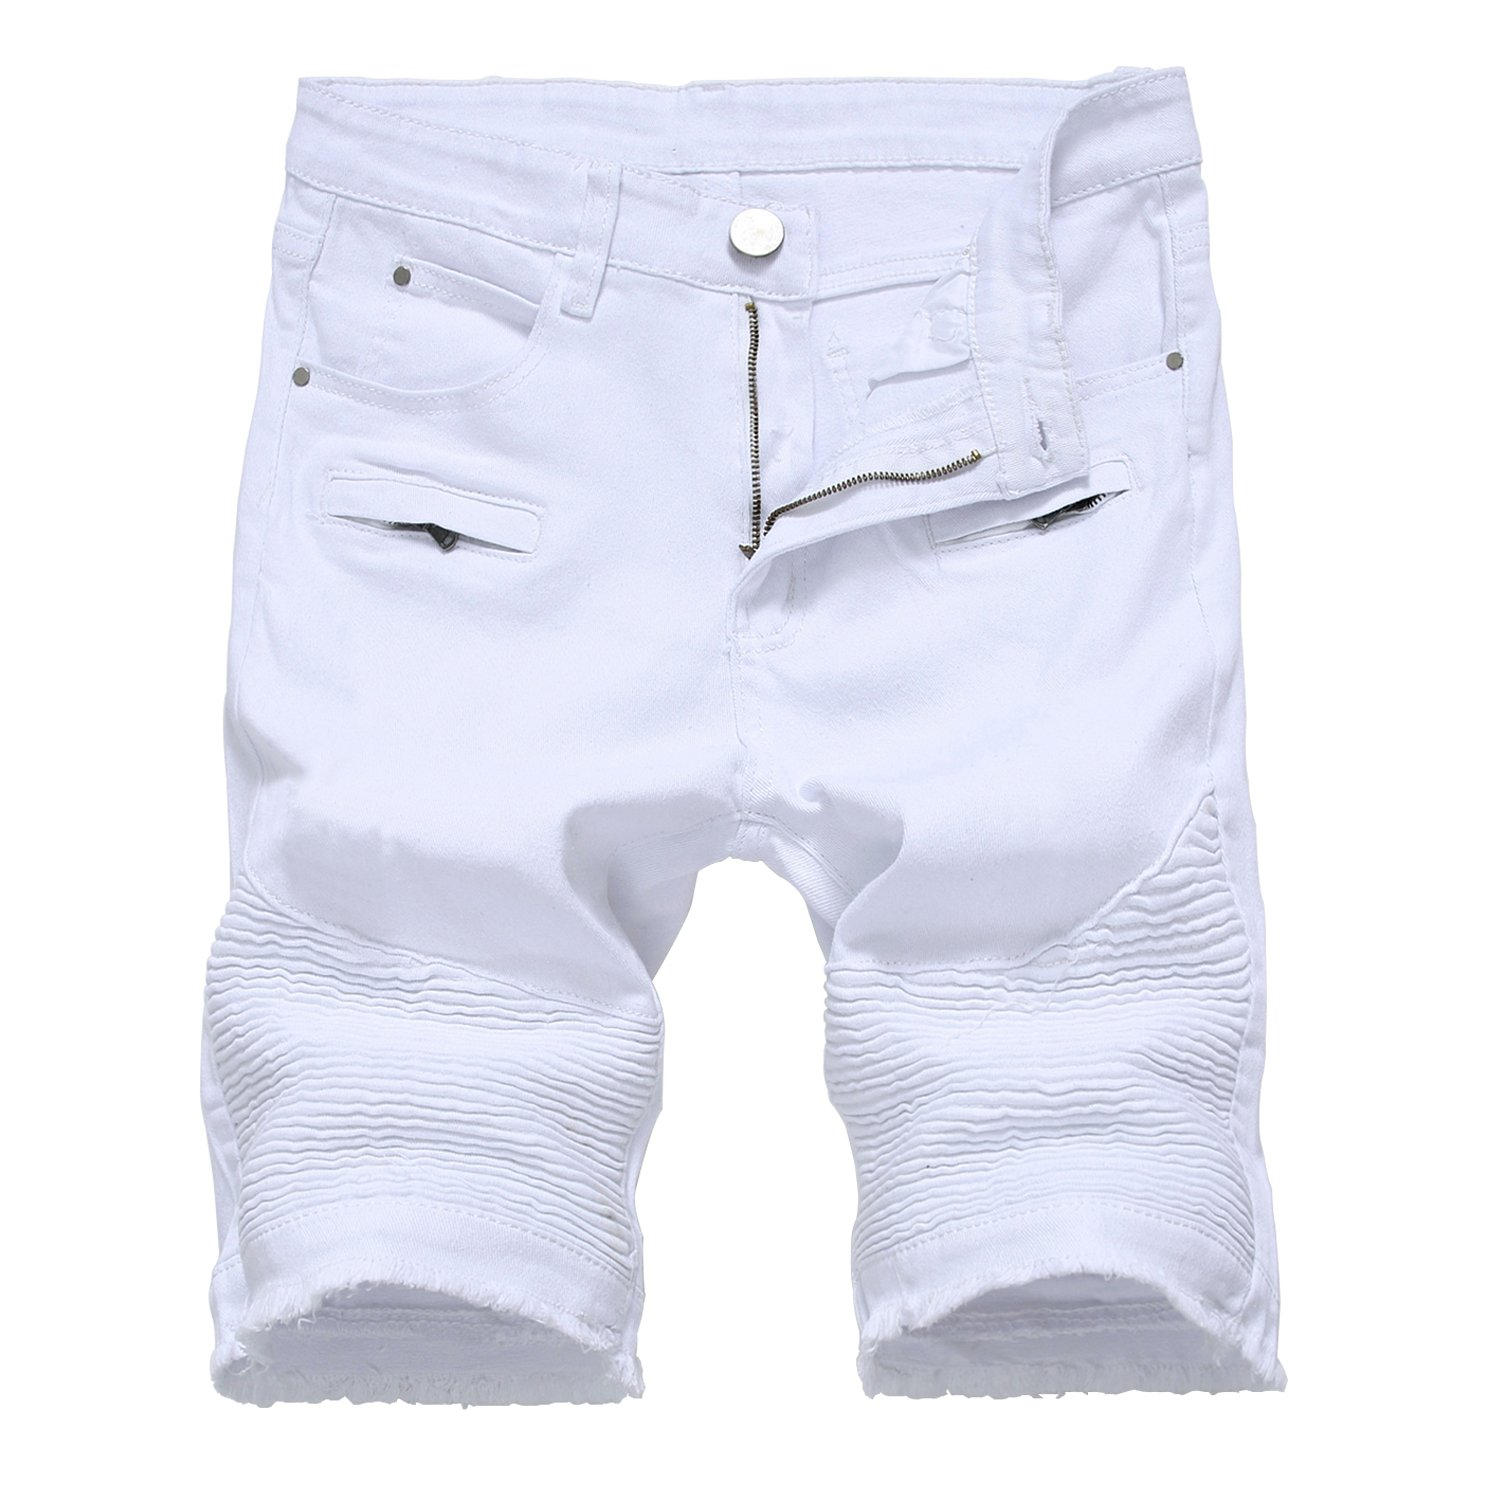 HULANG Mens Casual Ripped Distressed Jeans Denim Shorts with Broken Hole (White1, 36)